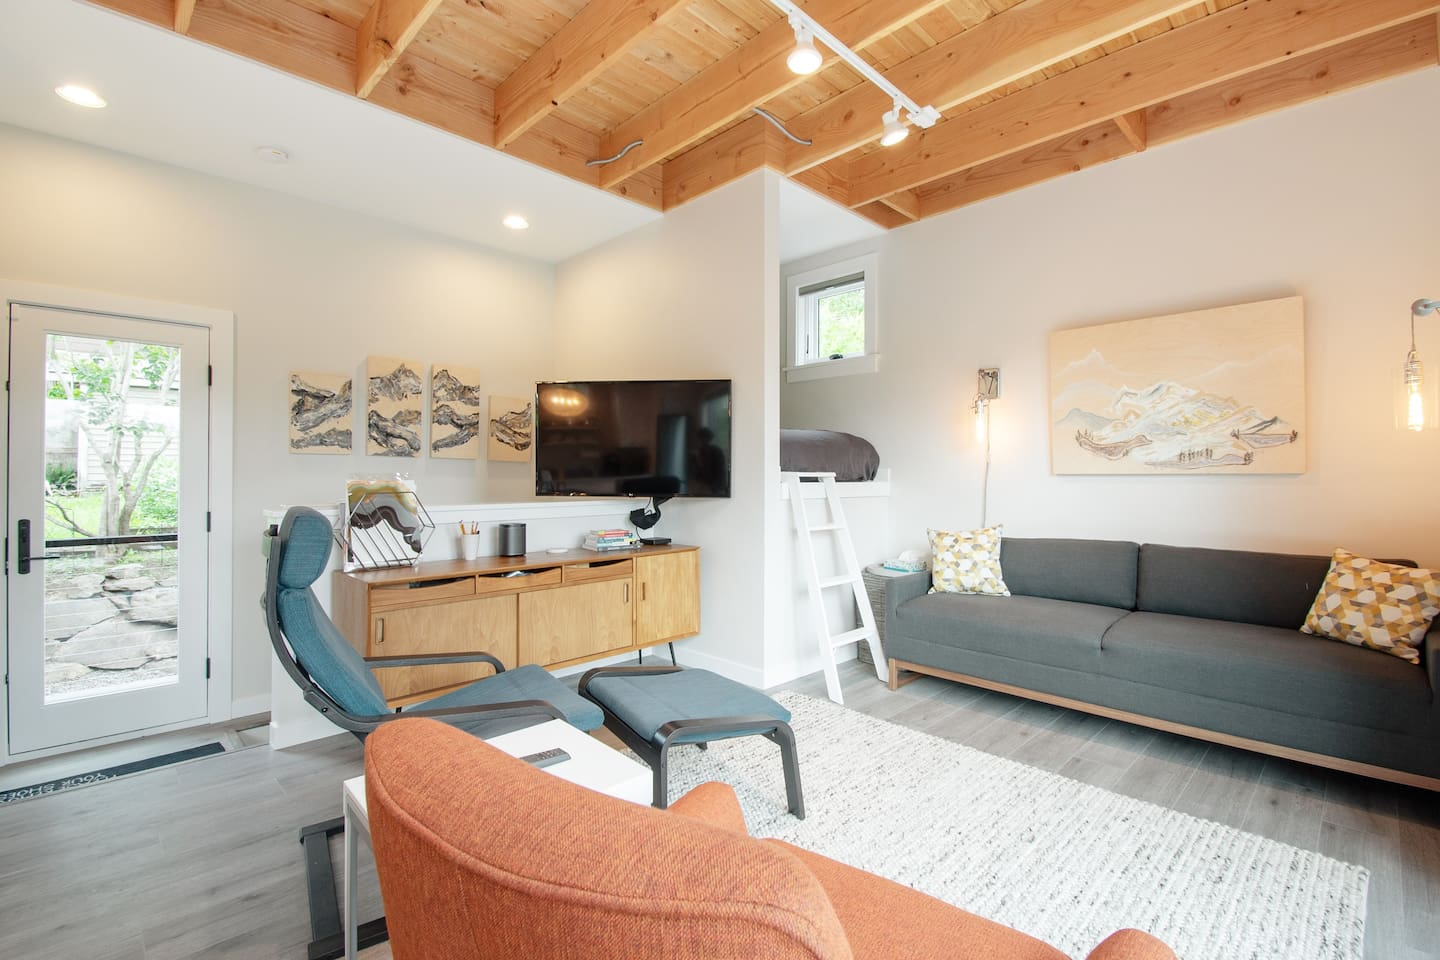 Hitt's Hill Guesthouse is your peaceful urban retreat in the heart of Seattle.